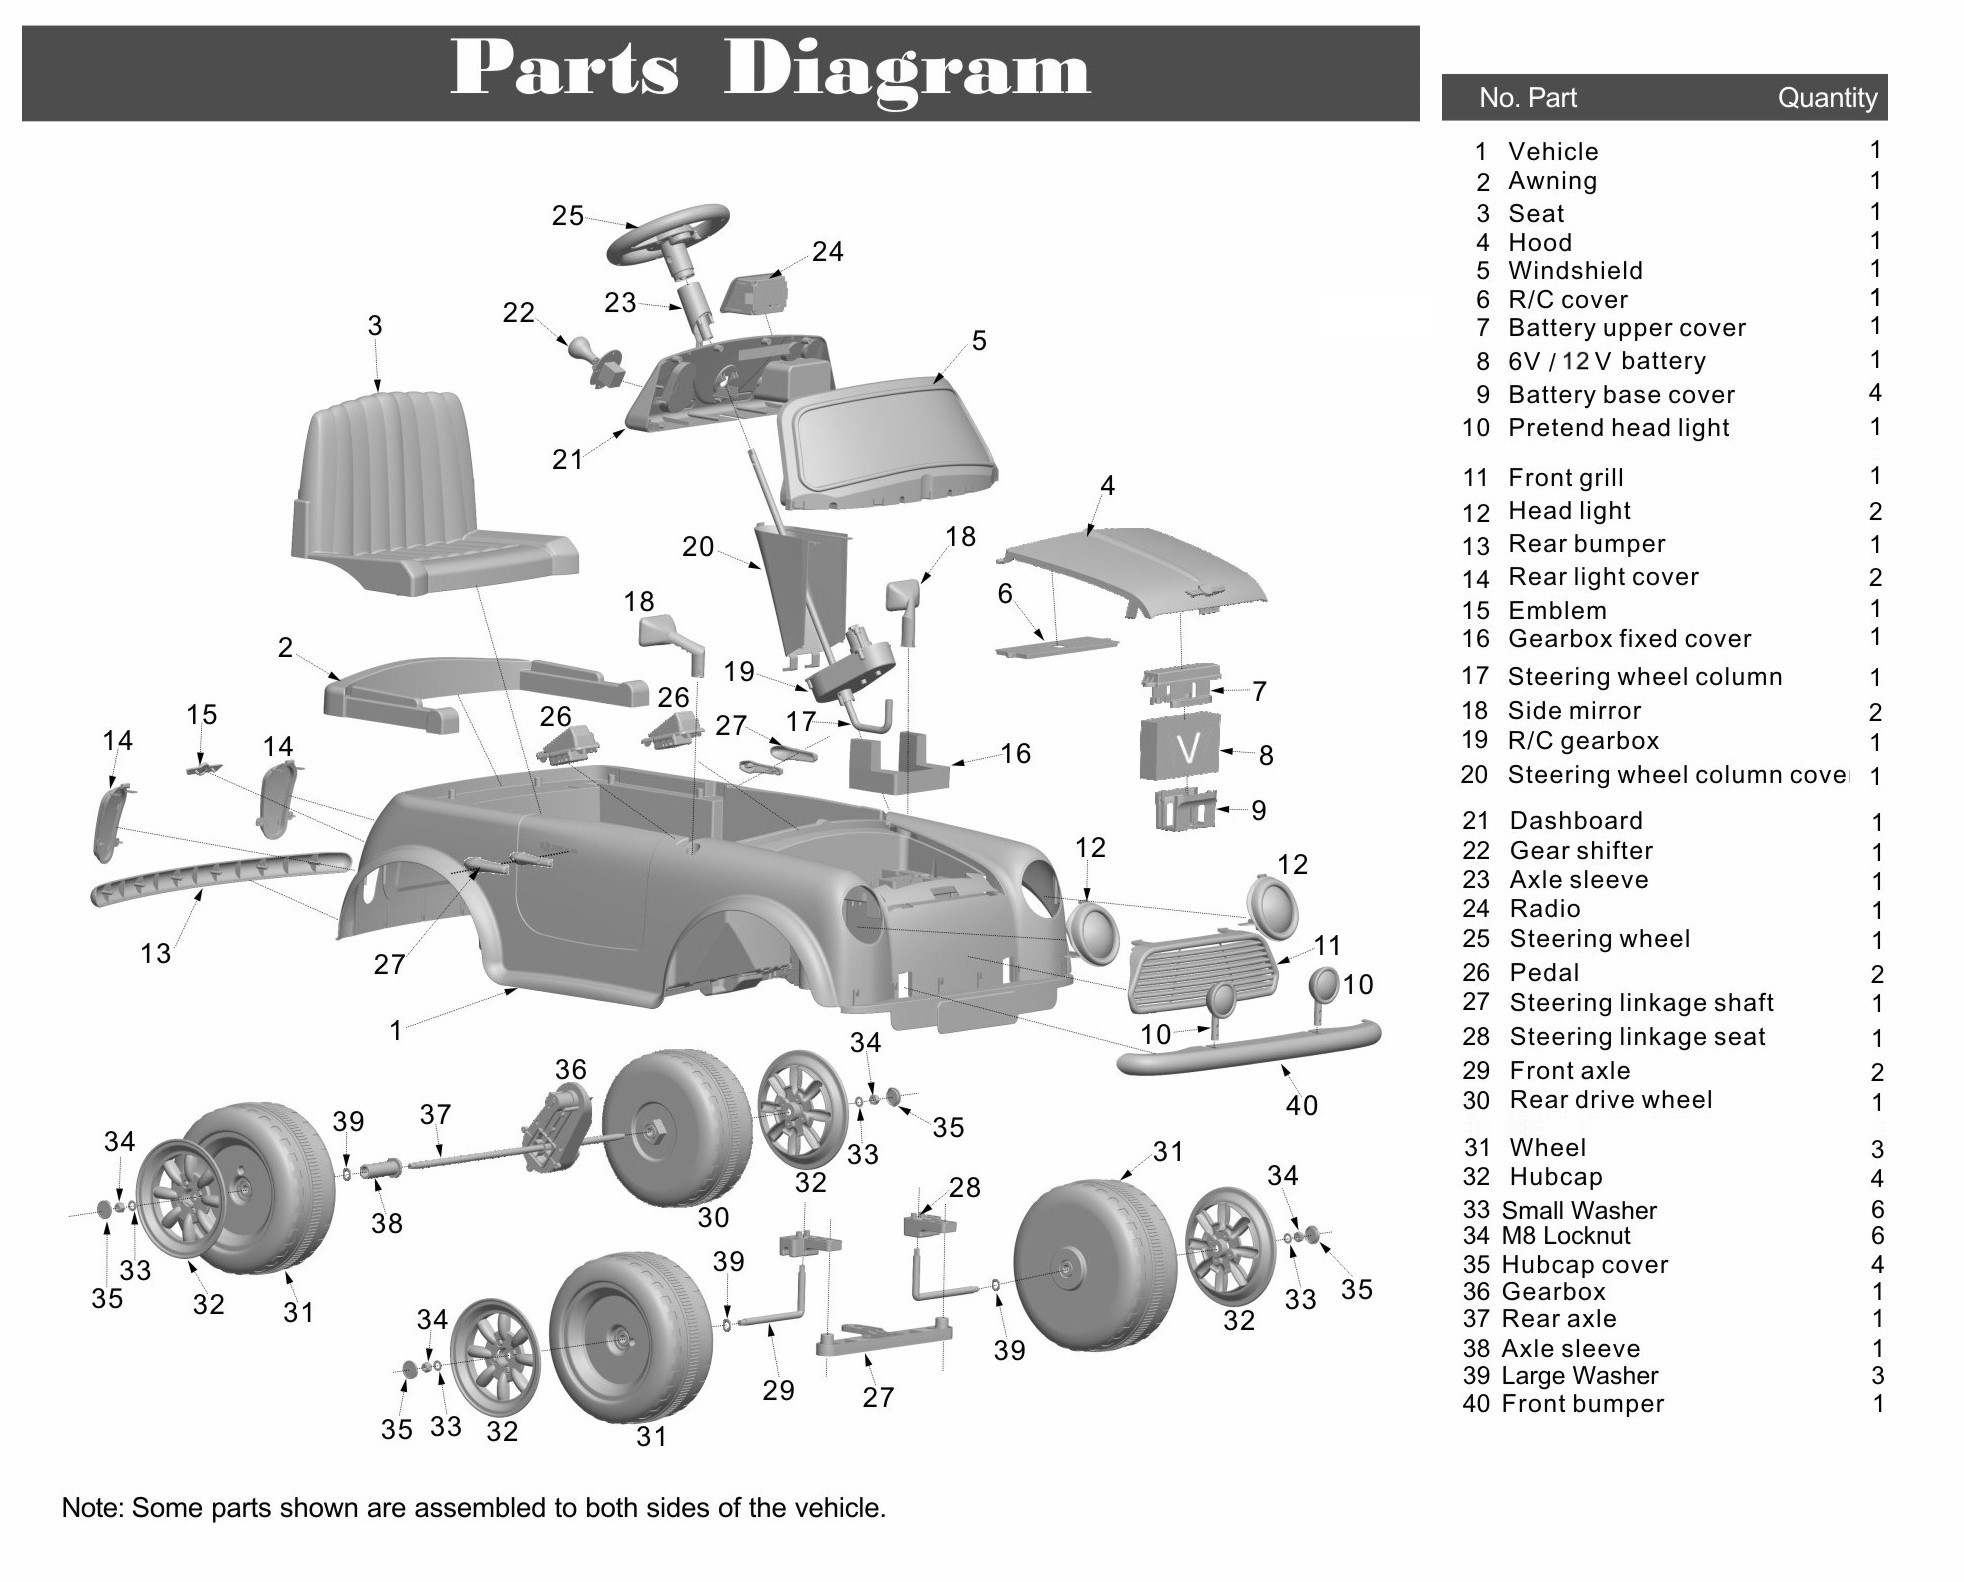 2002 Mini Cooper Parts Diagram Library Of Wiring 2008 Auto Electrical U2022 Rh Wiringdiagramcenter Today S